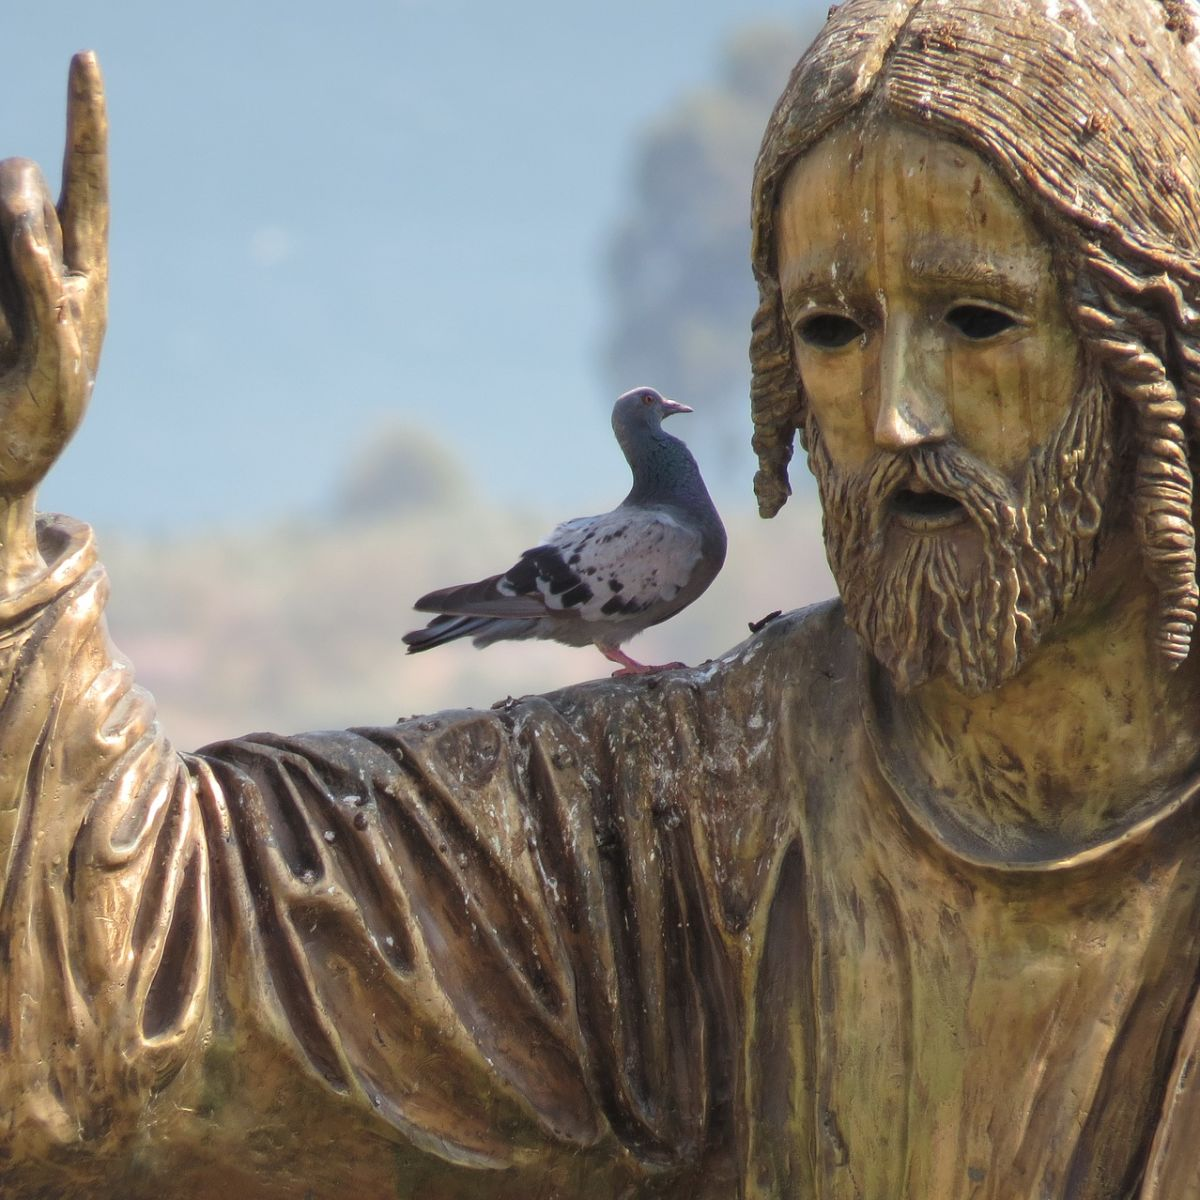 Jesus Christ teaching a bird